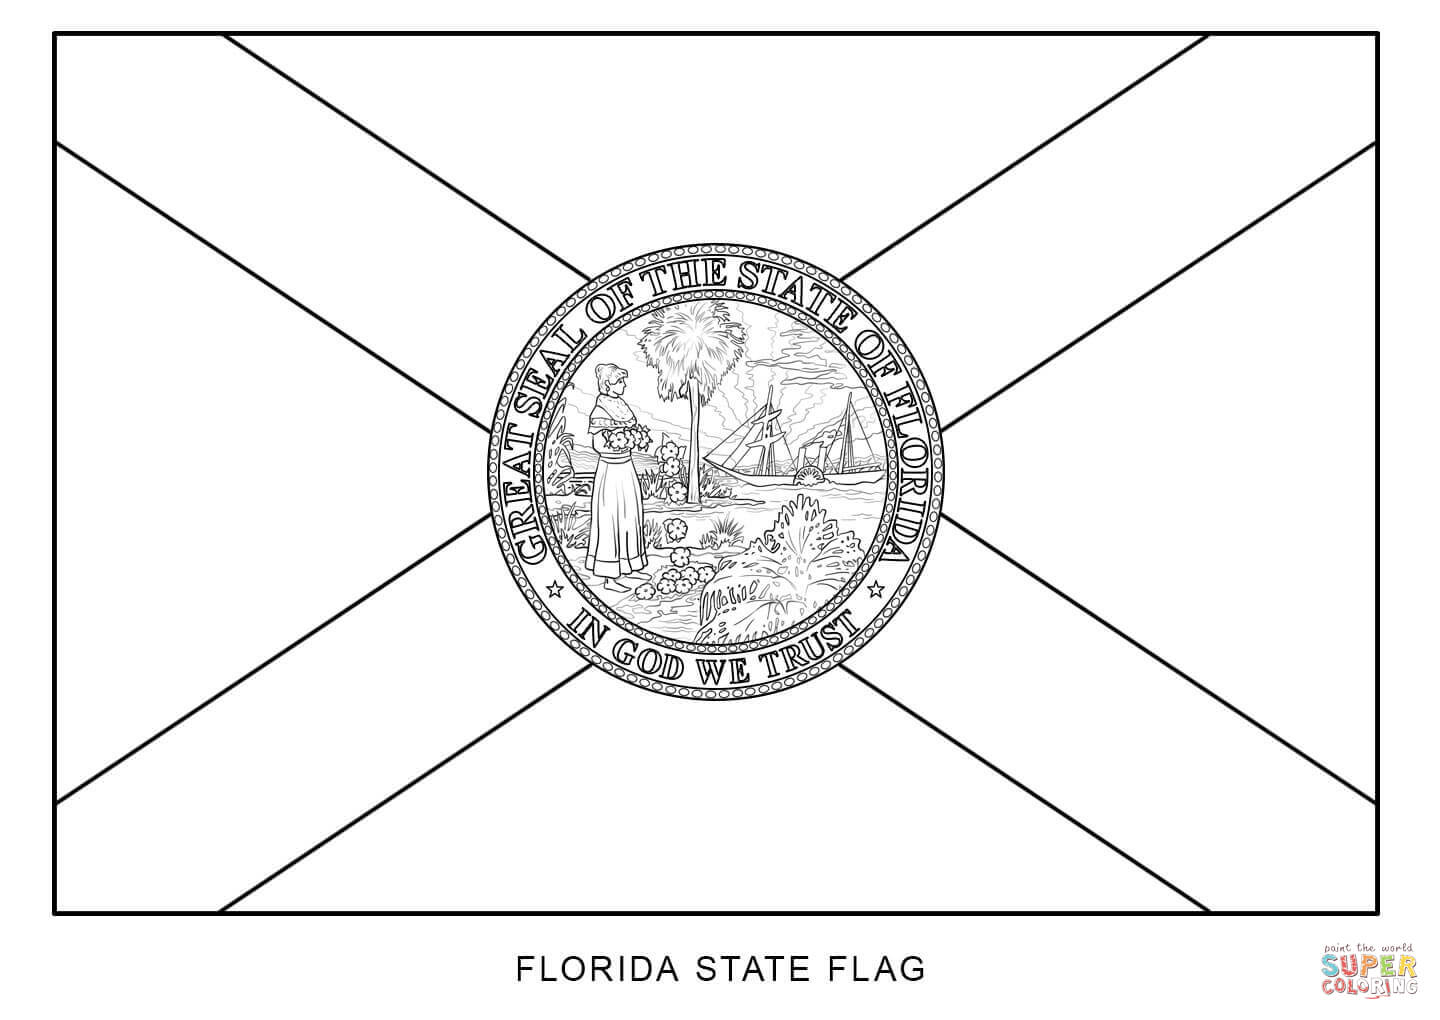 florida state flag coloring page world flags coloring pages 3 flag florida page coloring state